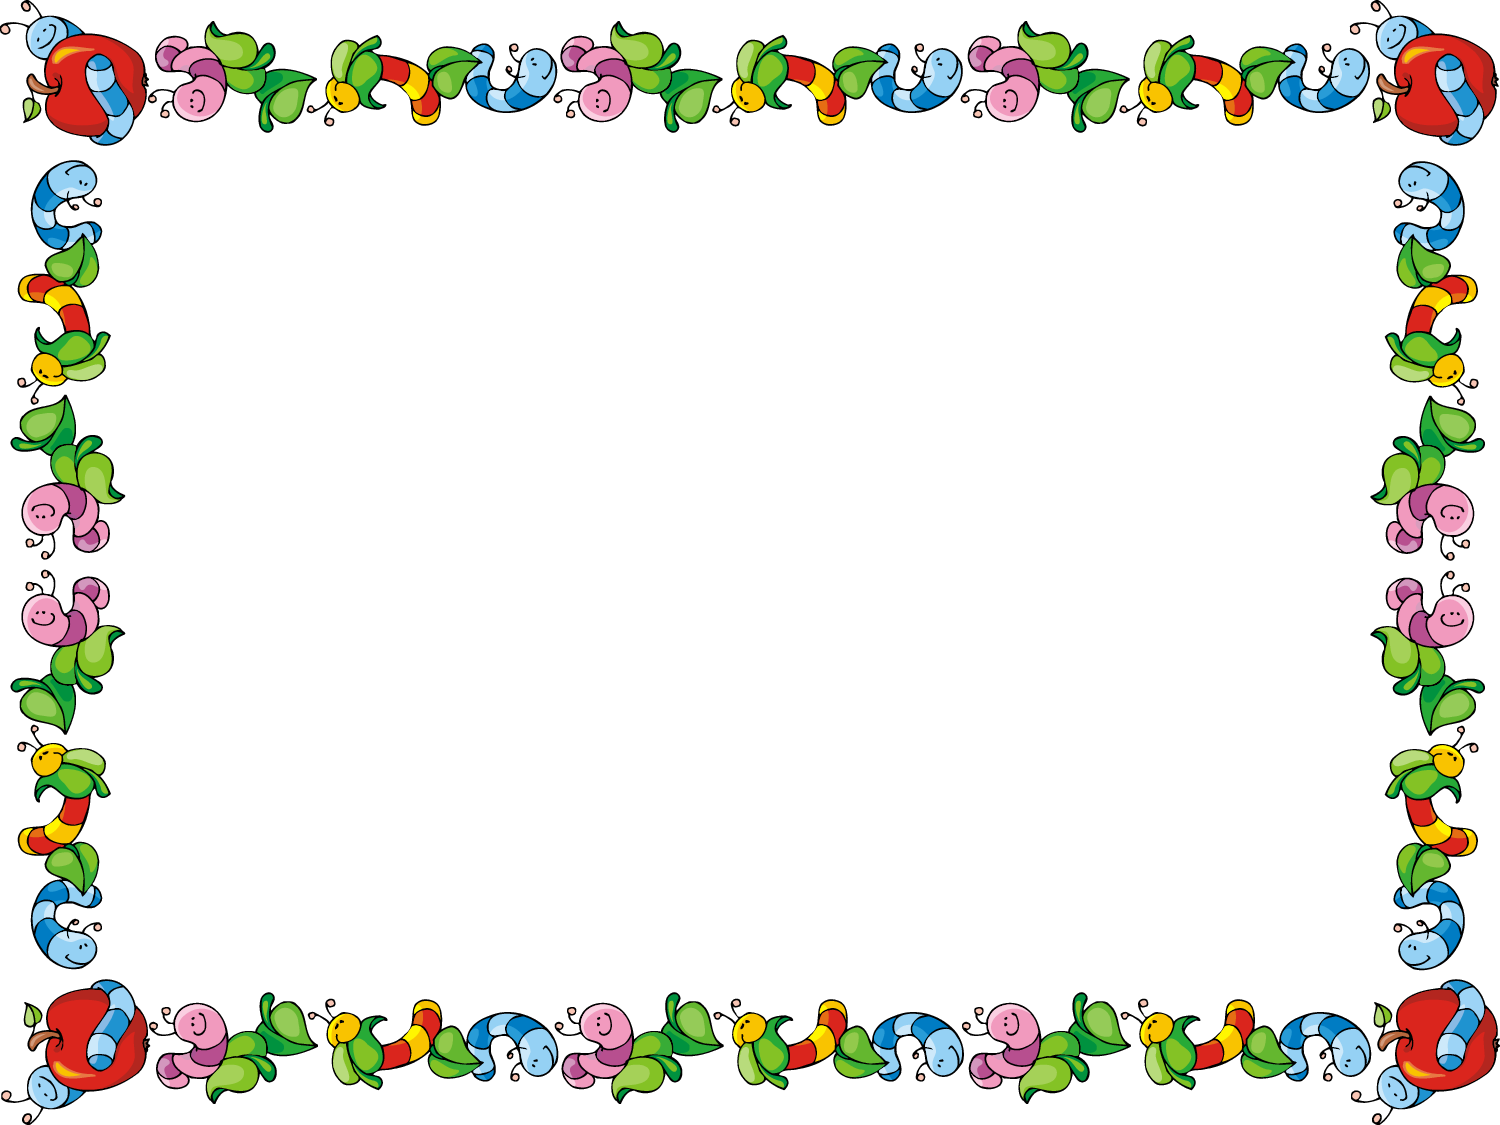 Clip art borders for teachers image Apple Borders And Frames Clipart - Clipart Kid image